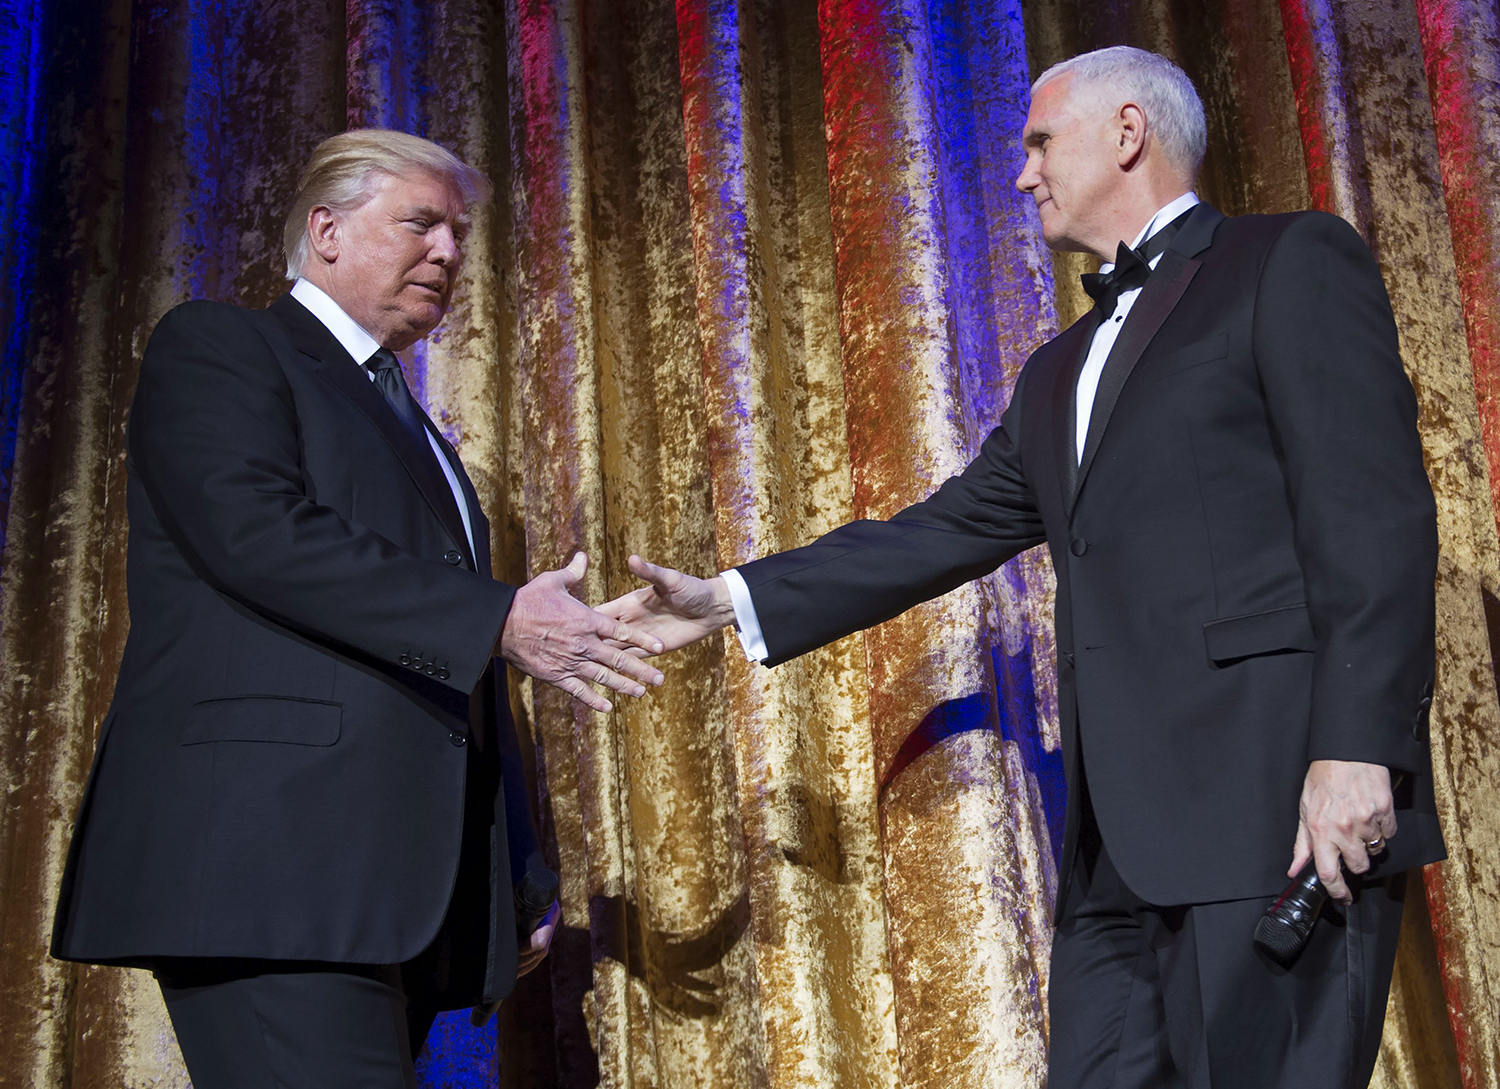 President-Elect Donald Trumps and Vice President-Elect Gov. Mike Pence (R-IN) arrive together to deliver remarks at the Chairman's Global Dinner, at the Andrew W. Mellon Auditorium in Washington, D.C. on January 17, 2017.